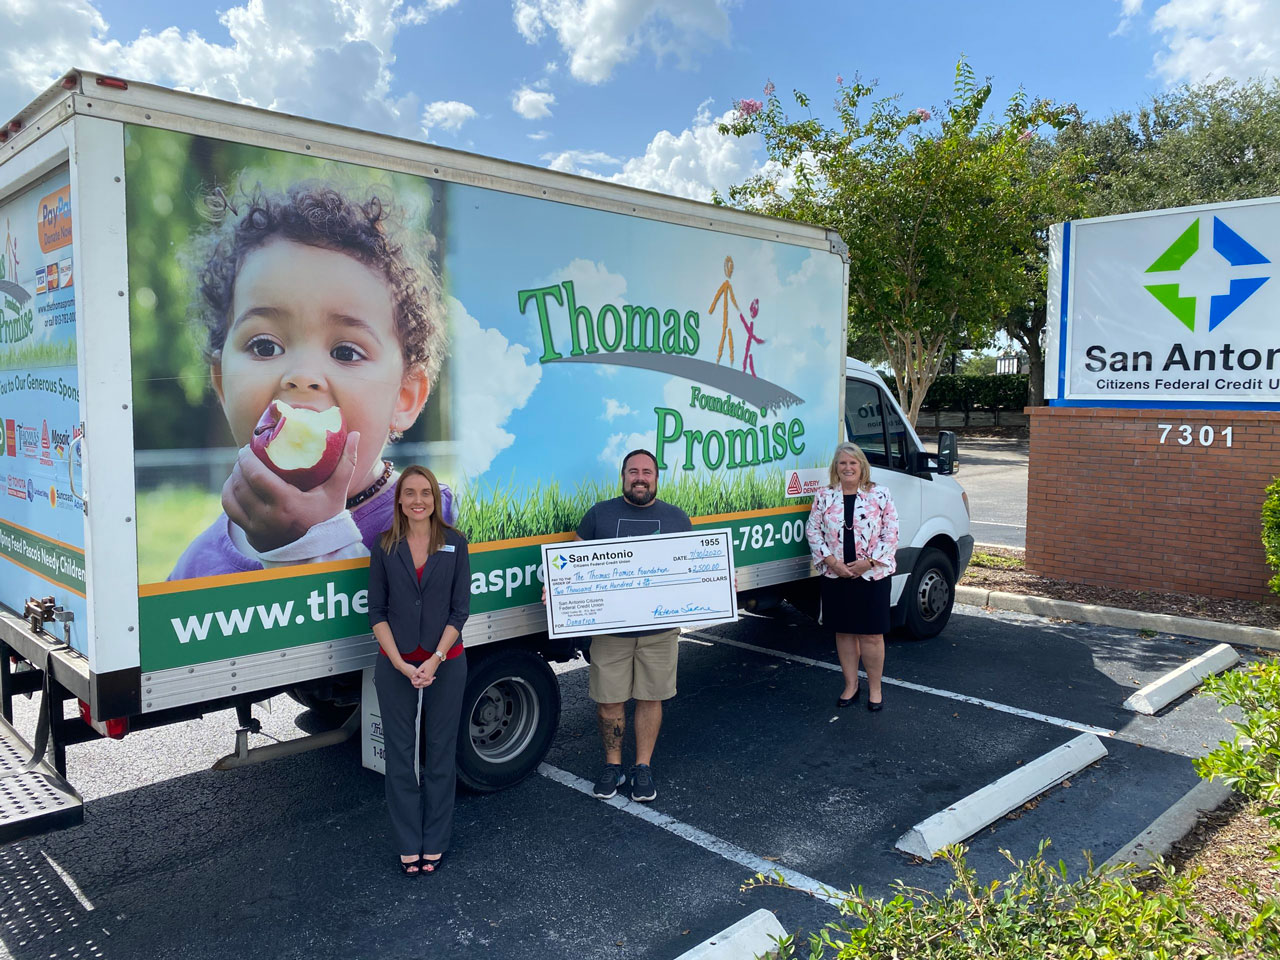 Two SACFCU Employees presenting a big check to a Thomas Promise Foundation Employee